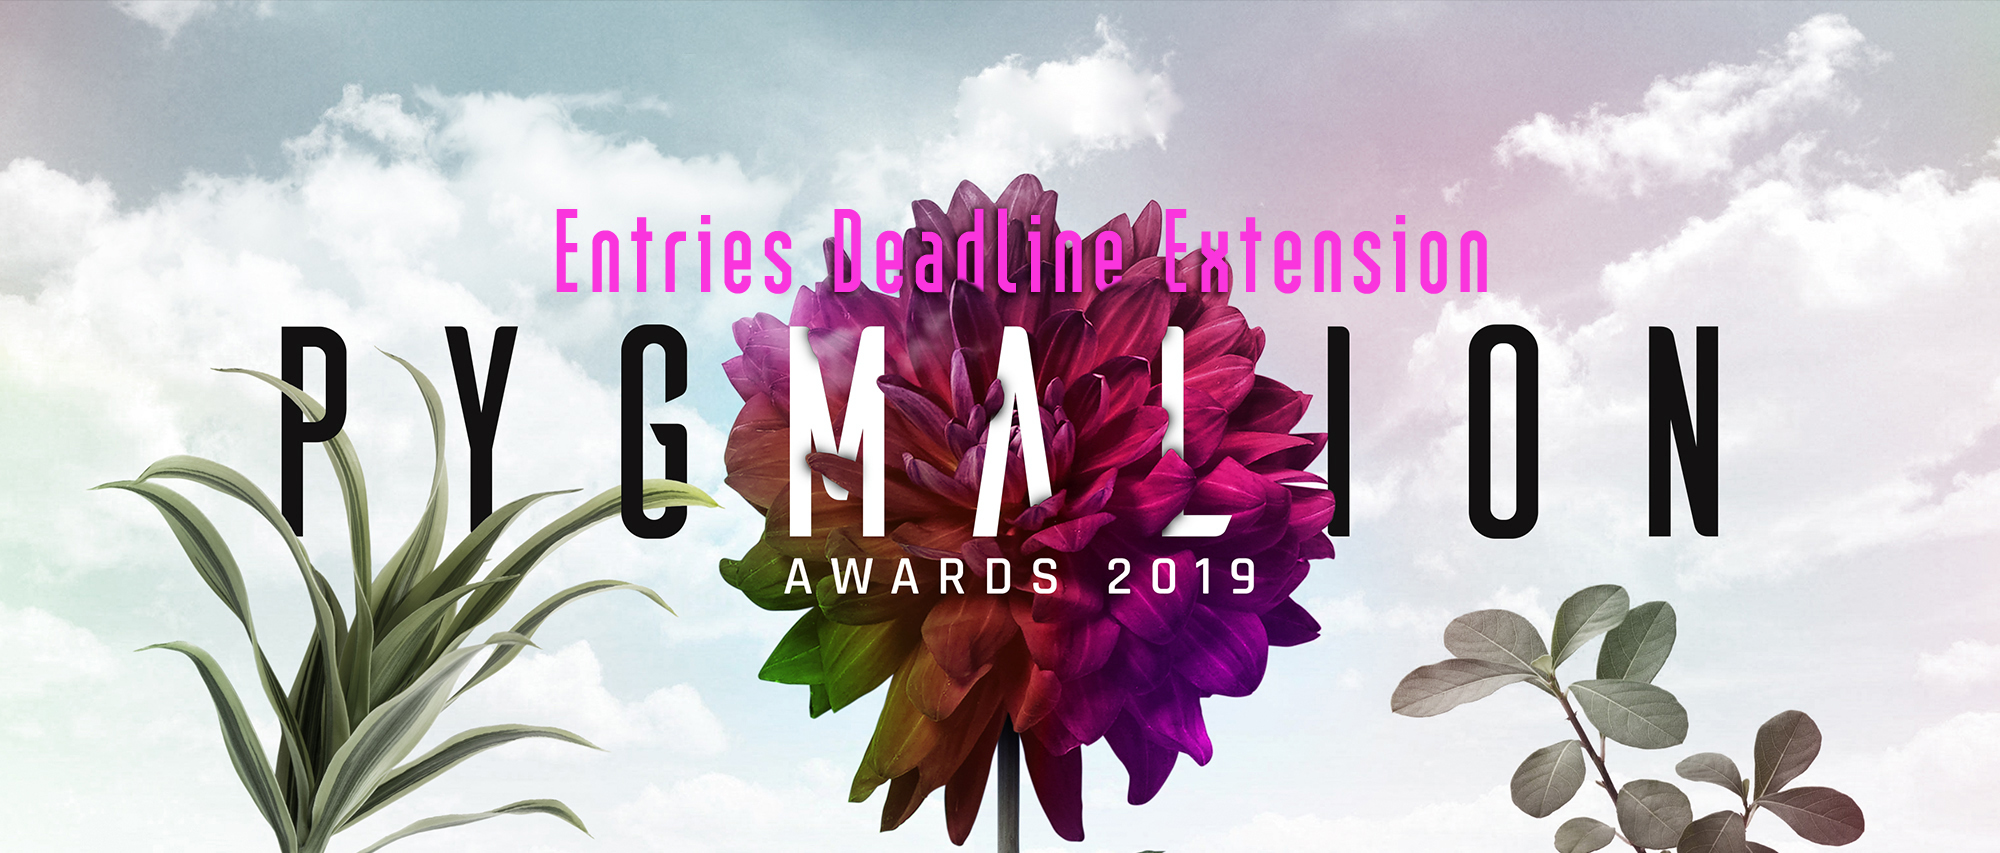 Call For Entries Extension